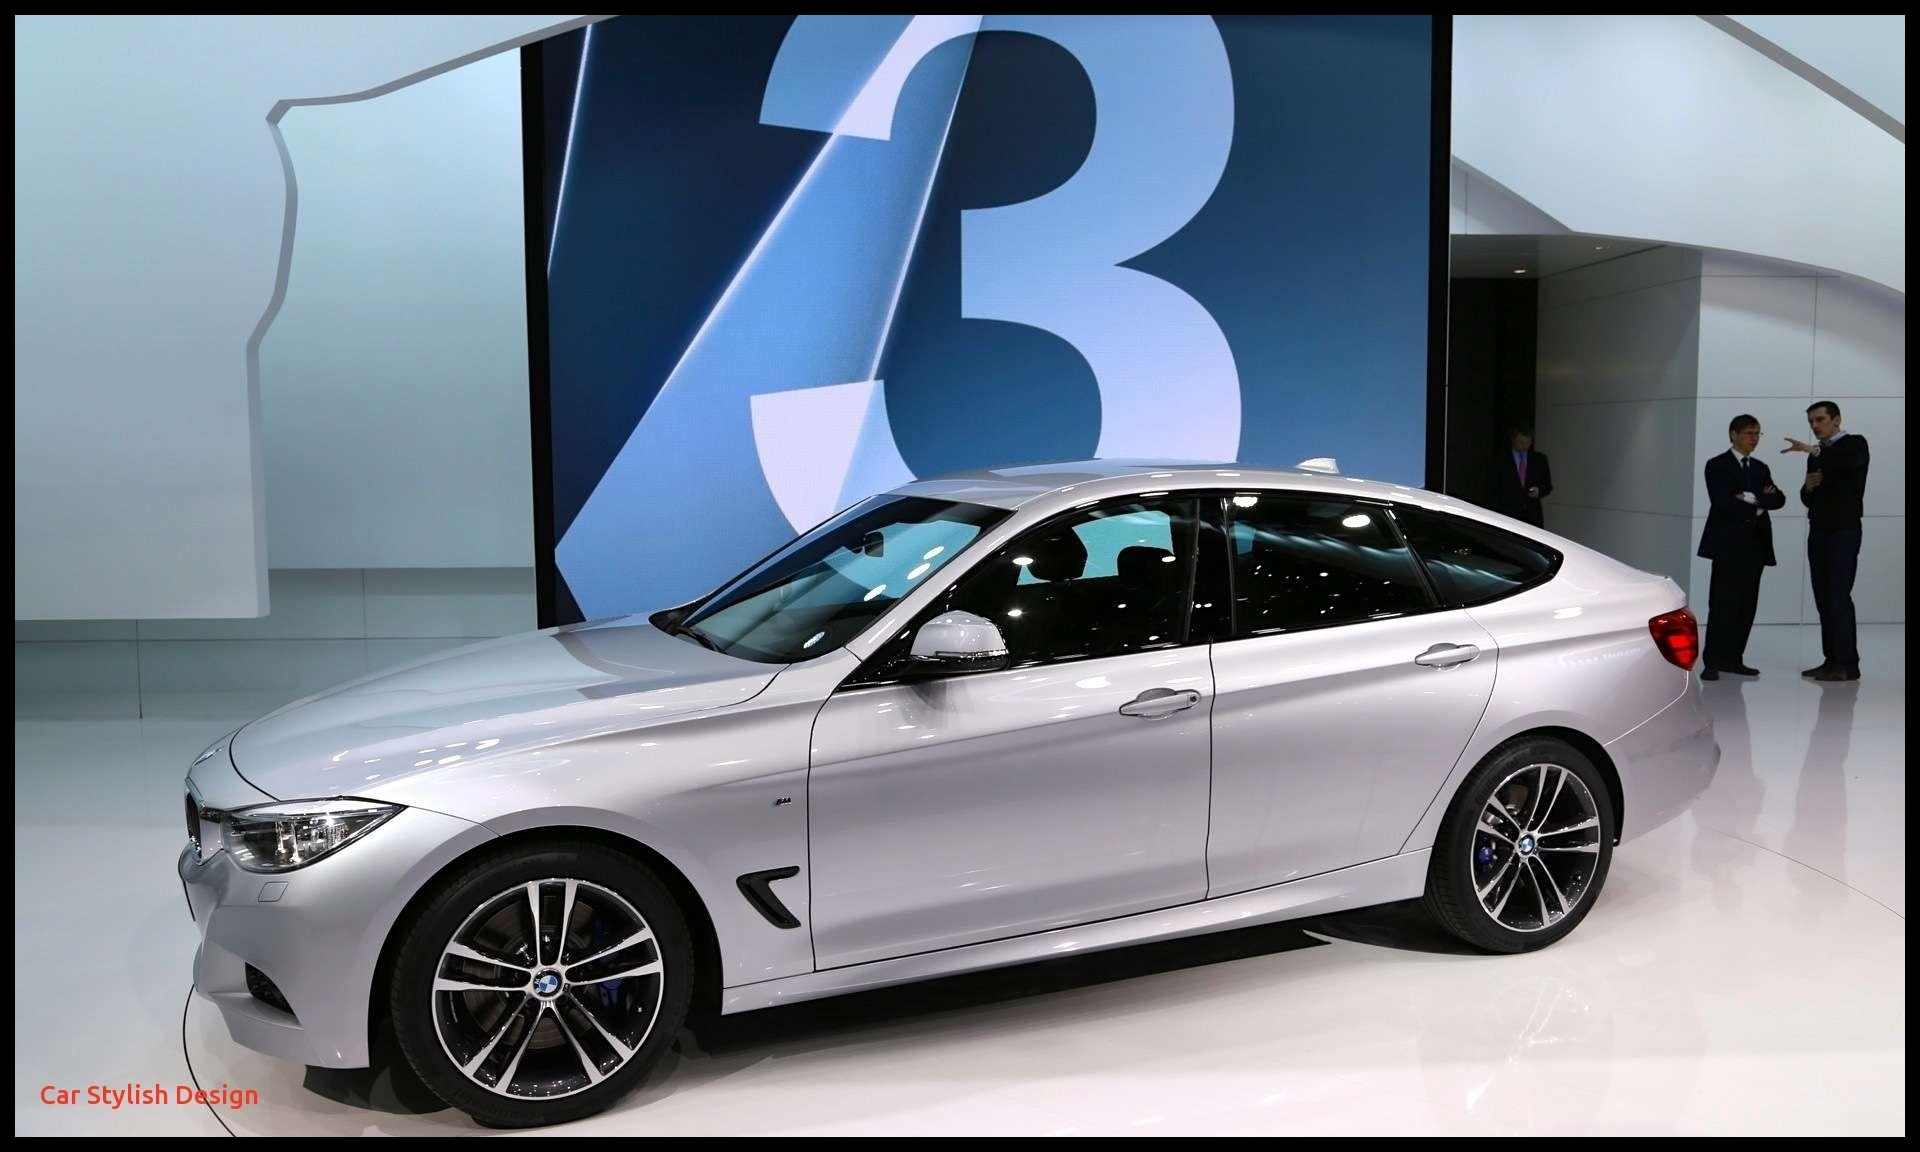 2013 Bmw 328i Luxury 2019 Bmw 335i Release Date and Specs Cars Picture